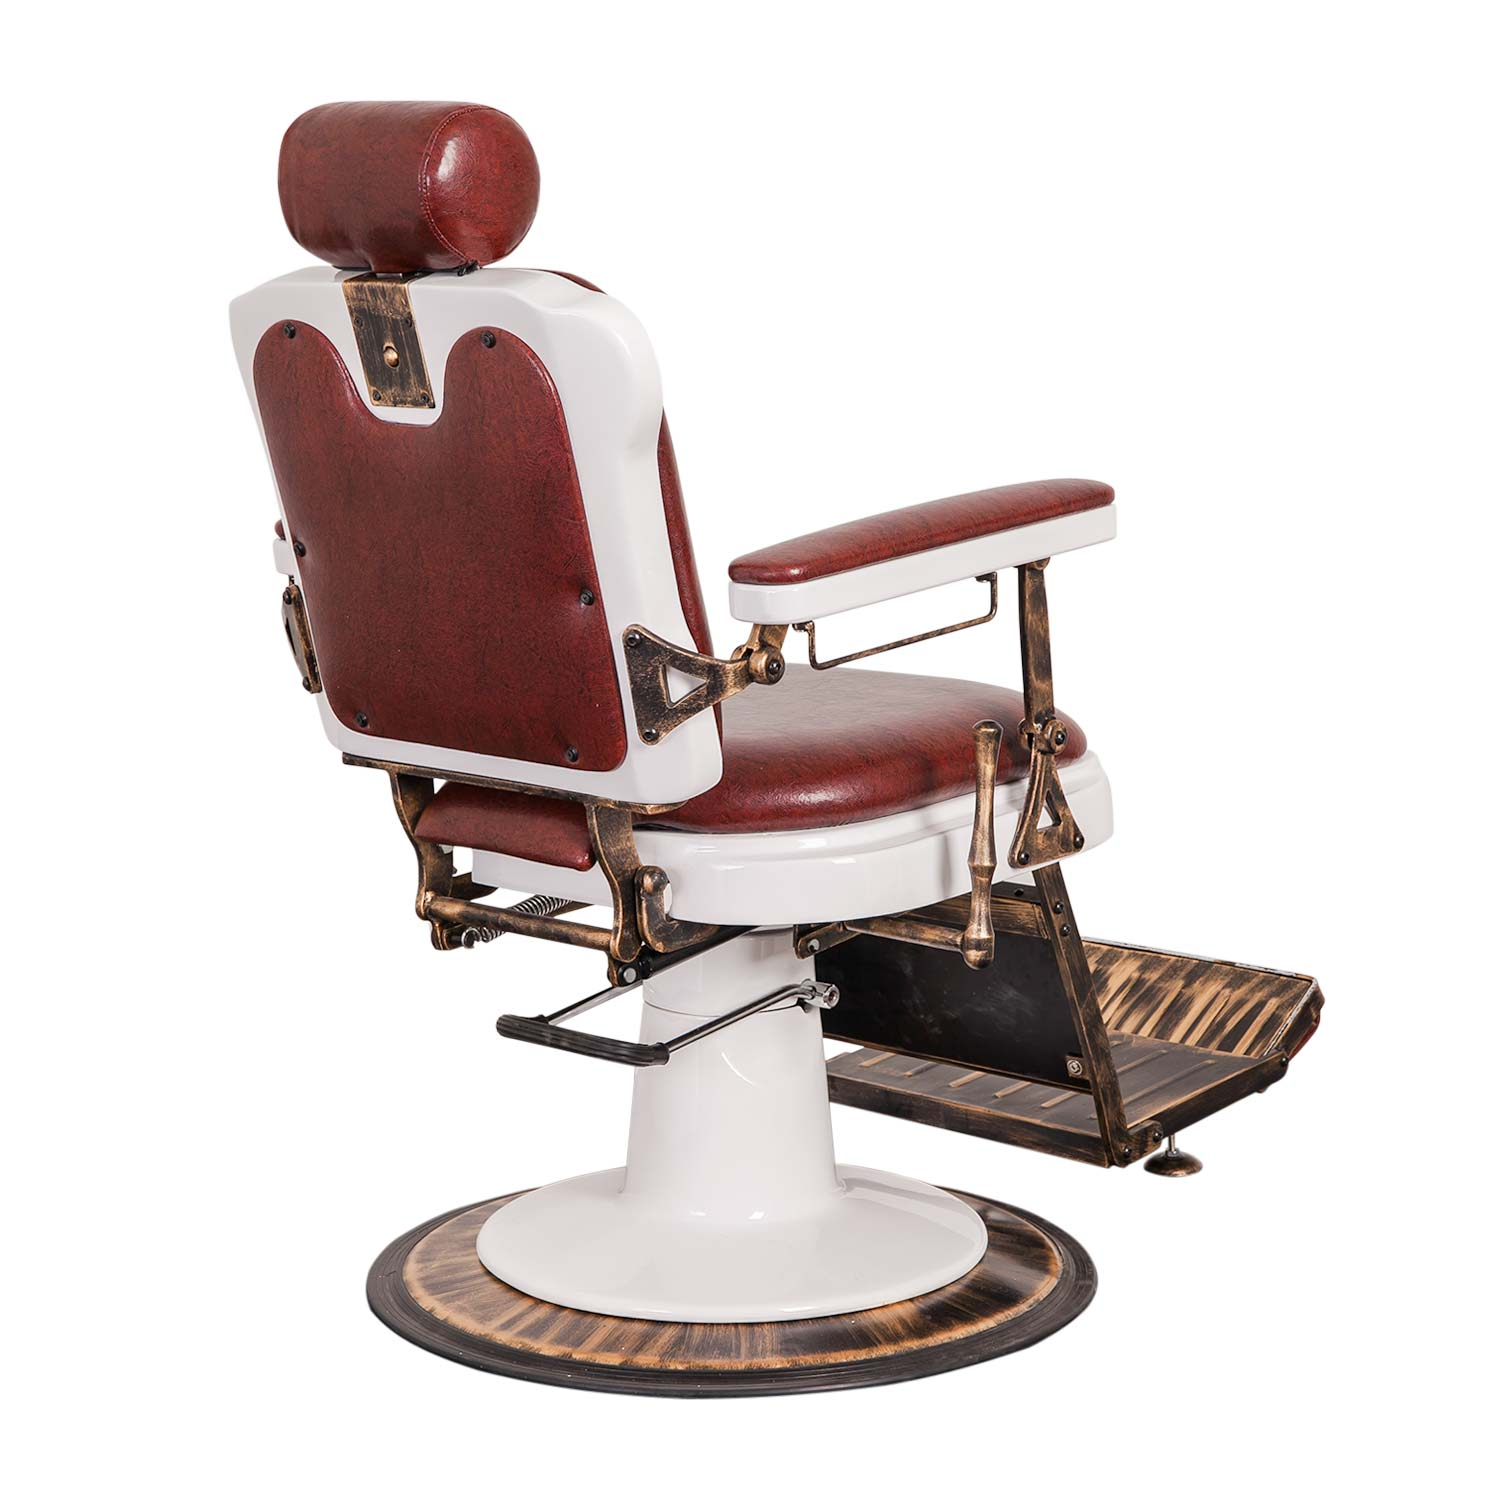 Pibbs 662 King Reclining Barber Chair alternative product image 3